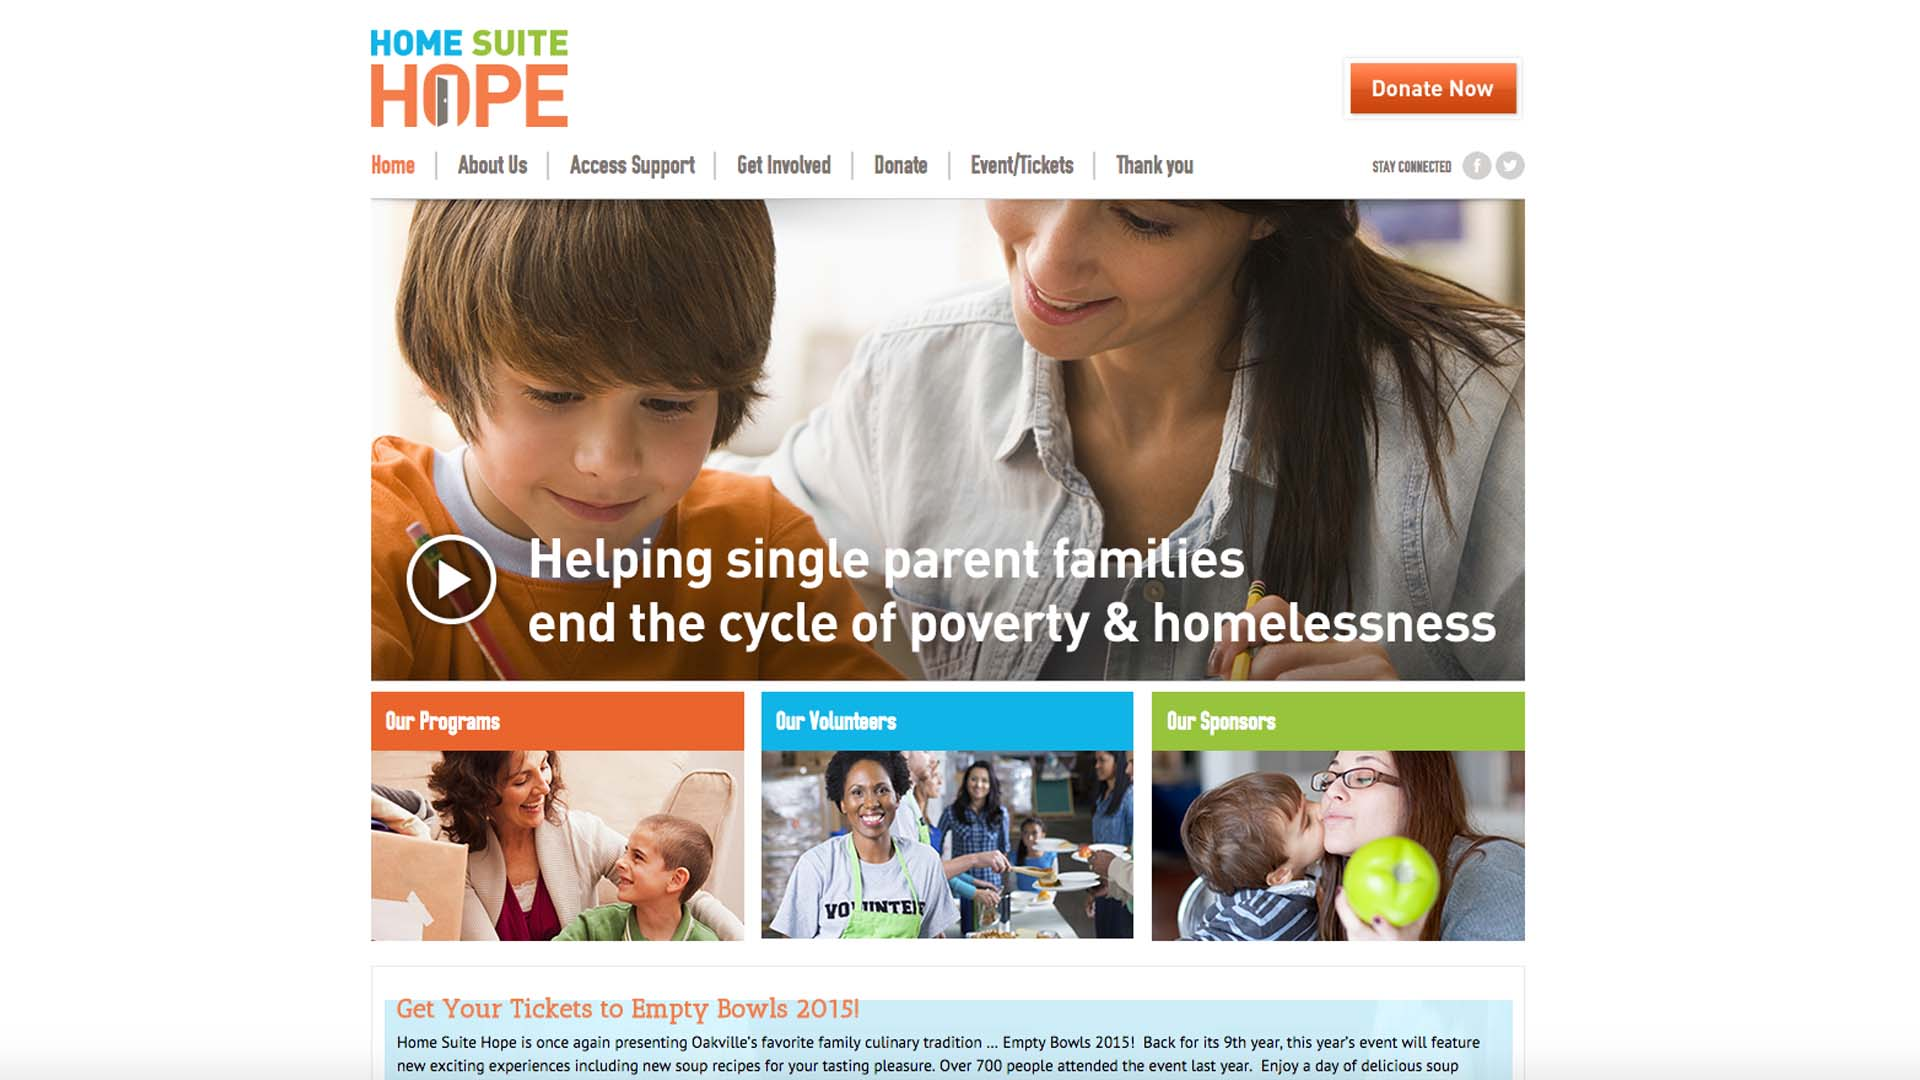 home suite hope website home page